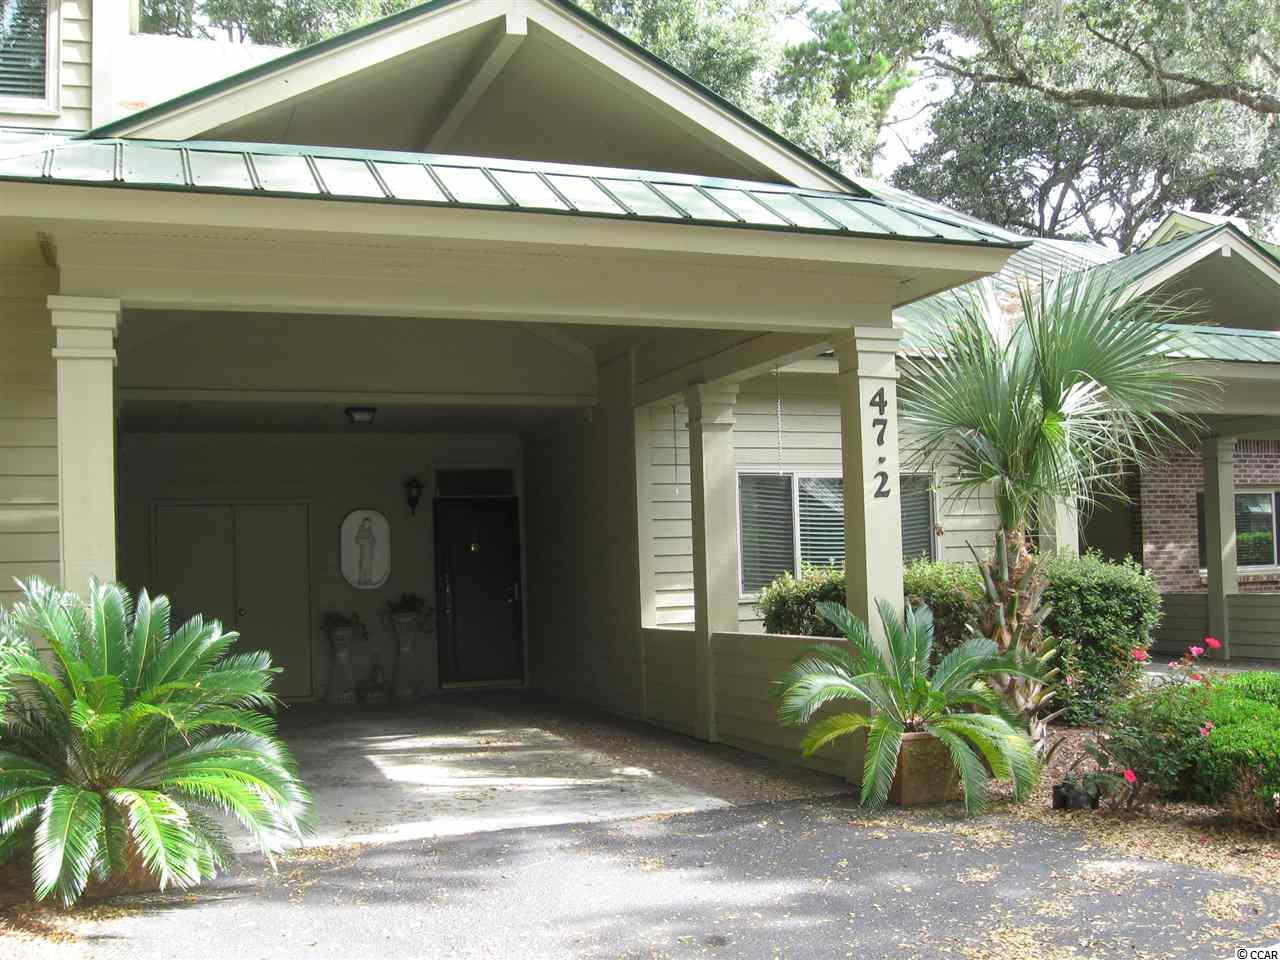 Townhouse for Sale at 47-2 Twelve Oaks Drive 47-2 Twelve Oaks Drive Pawleys Island, South Carolina 29585 United States